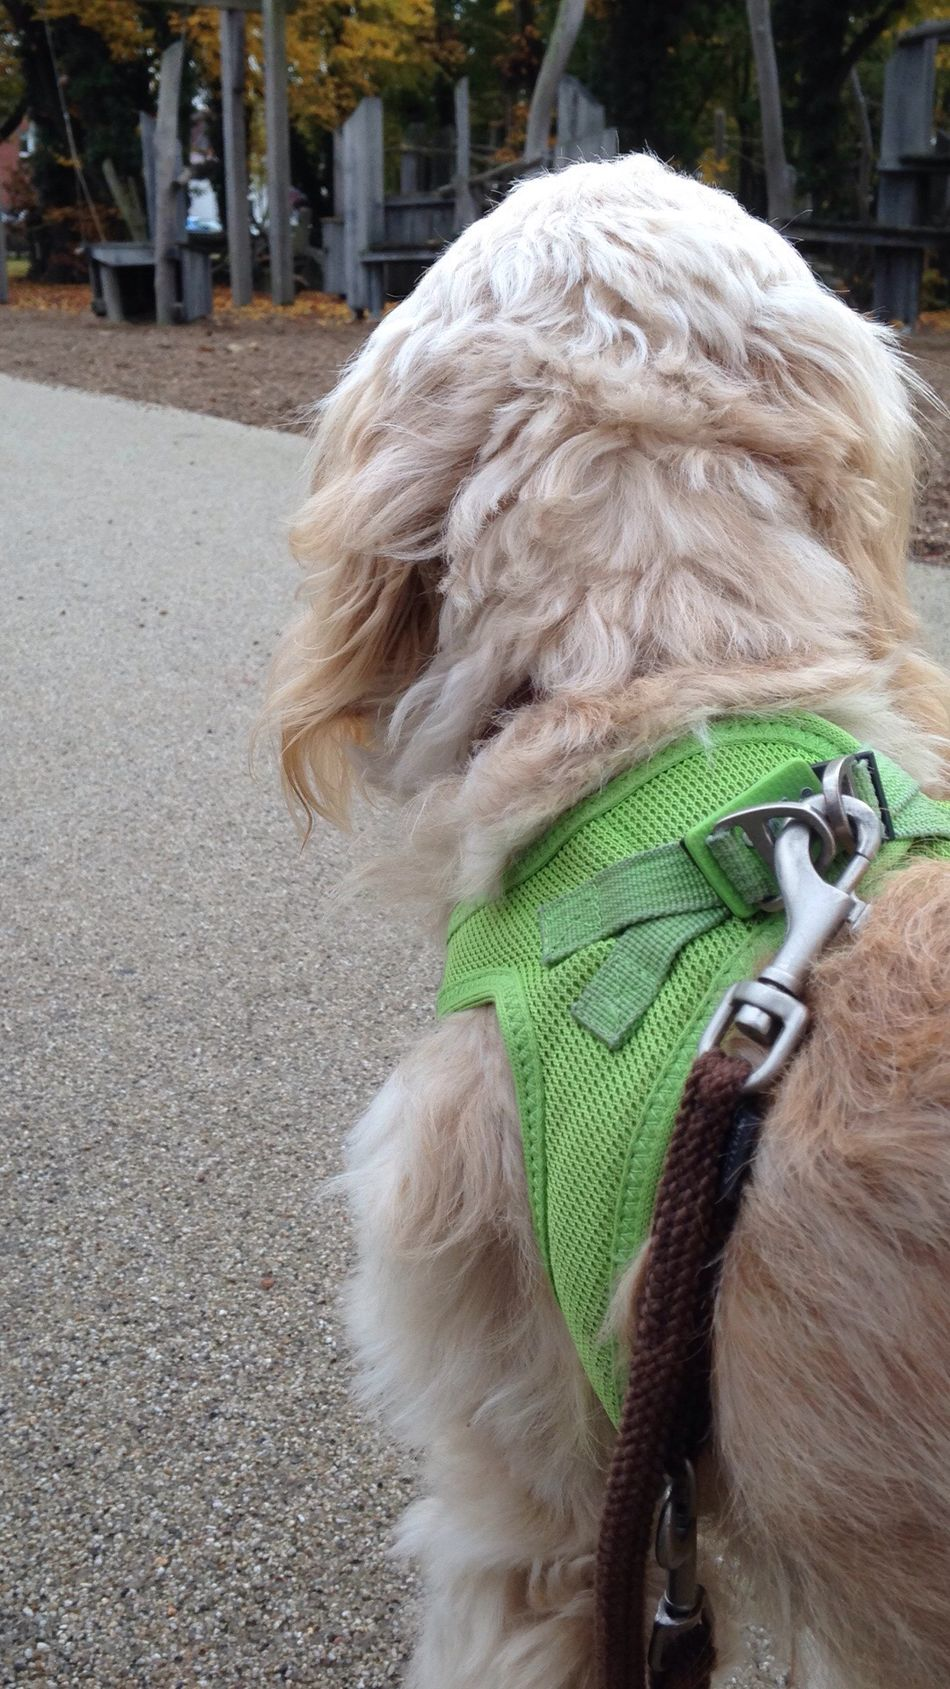 Cockerpoodle Domestic Animals cockerpoo Outdoors Poodle Day No People From Behind... walk Dog Leash One Animal